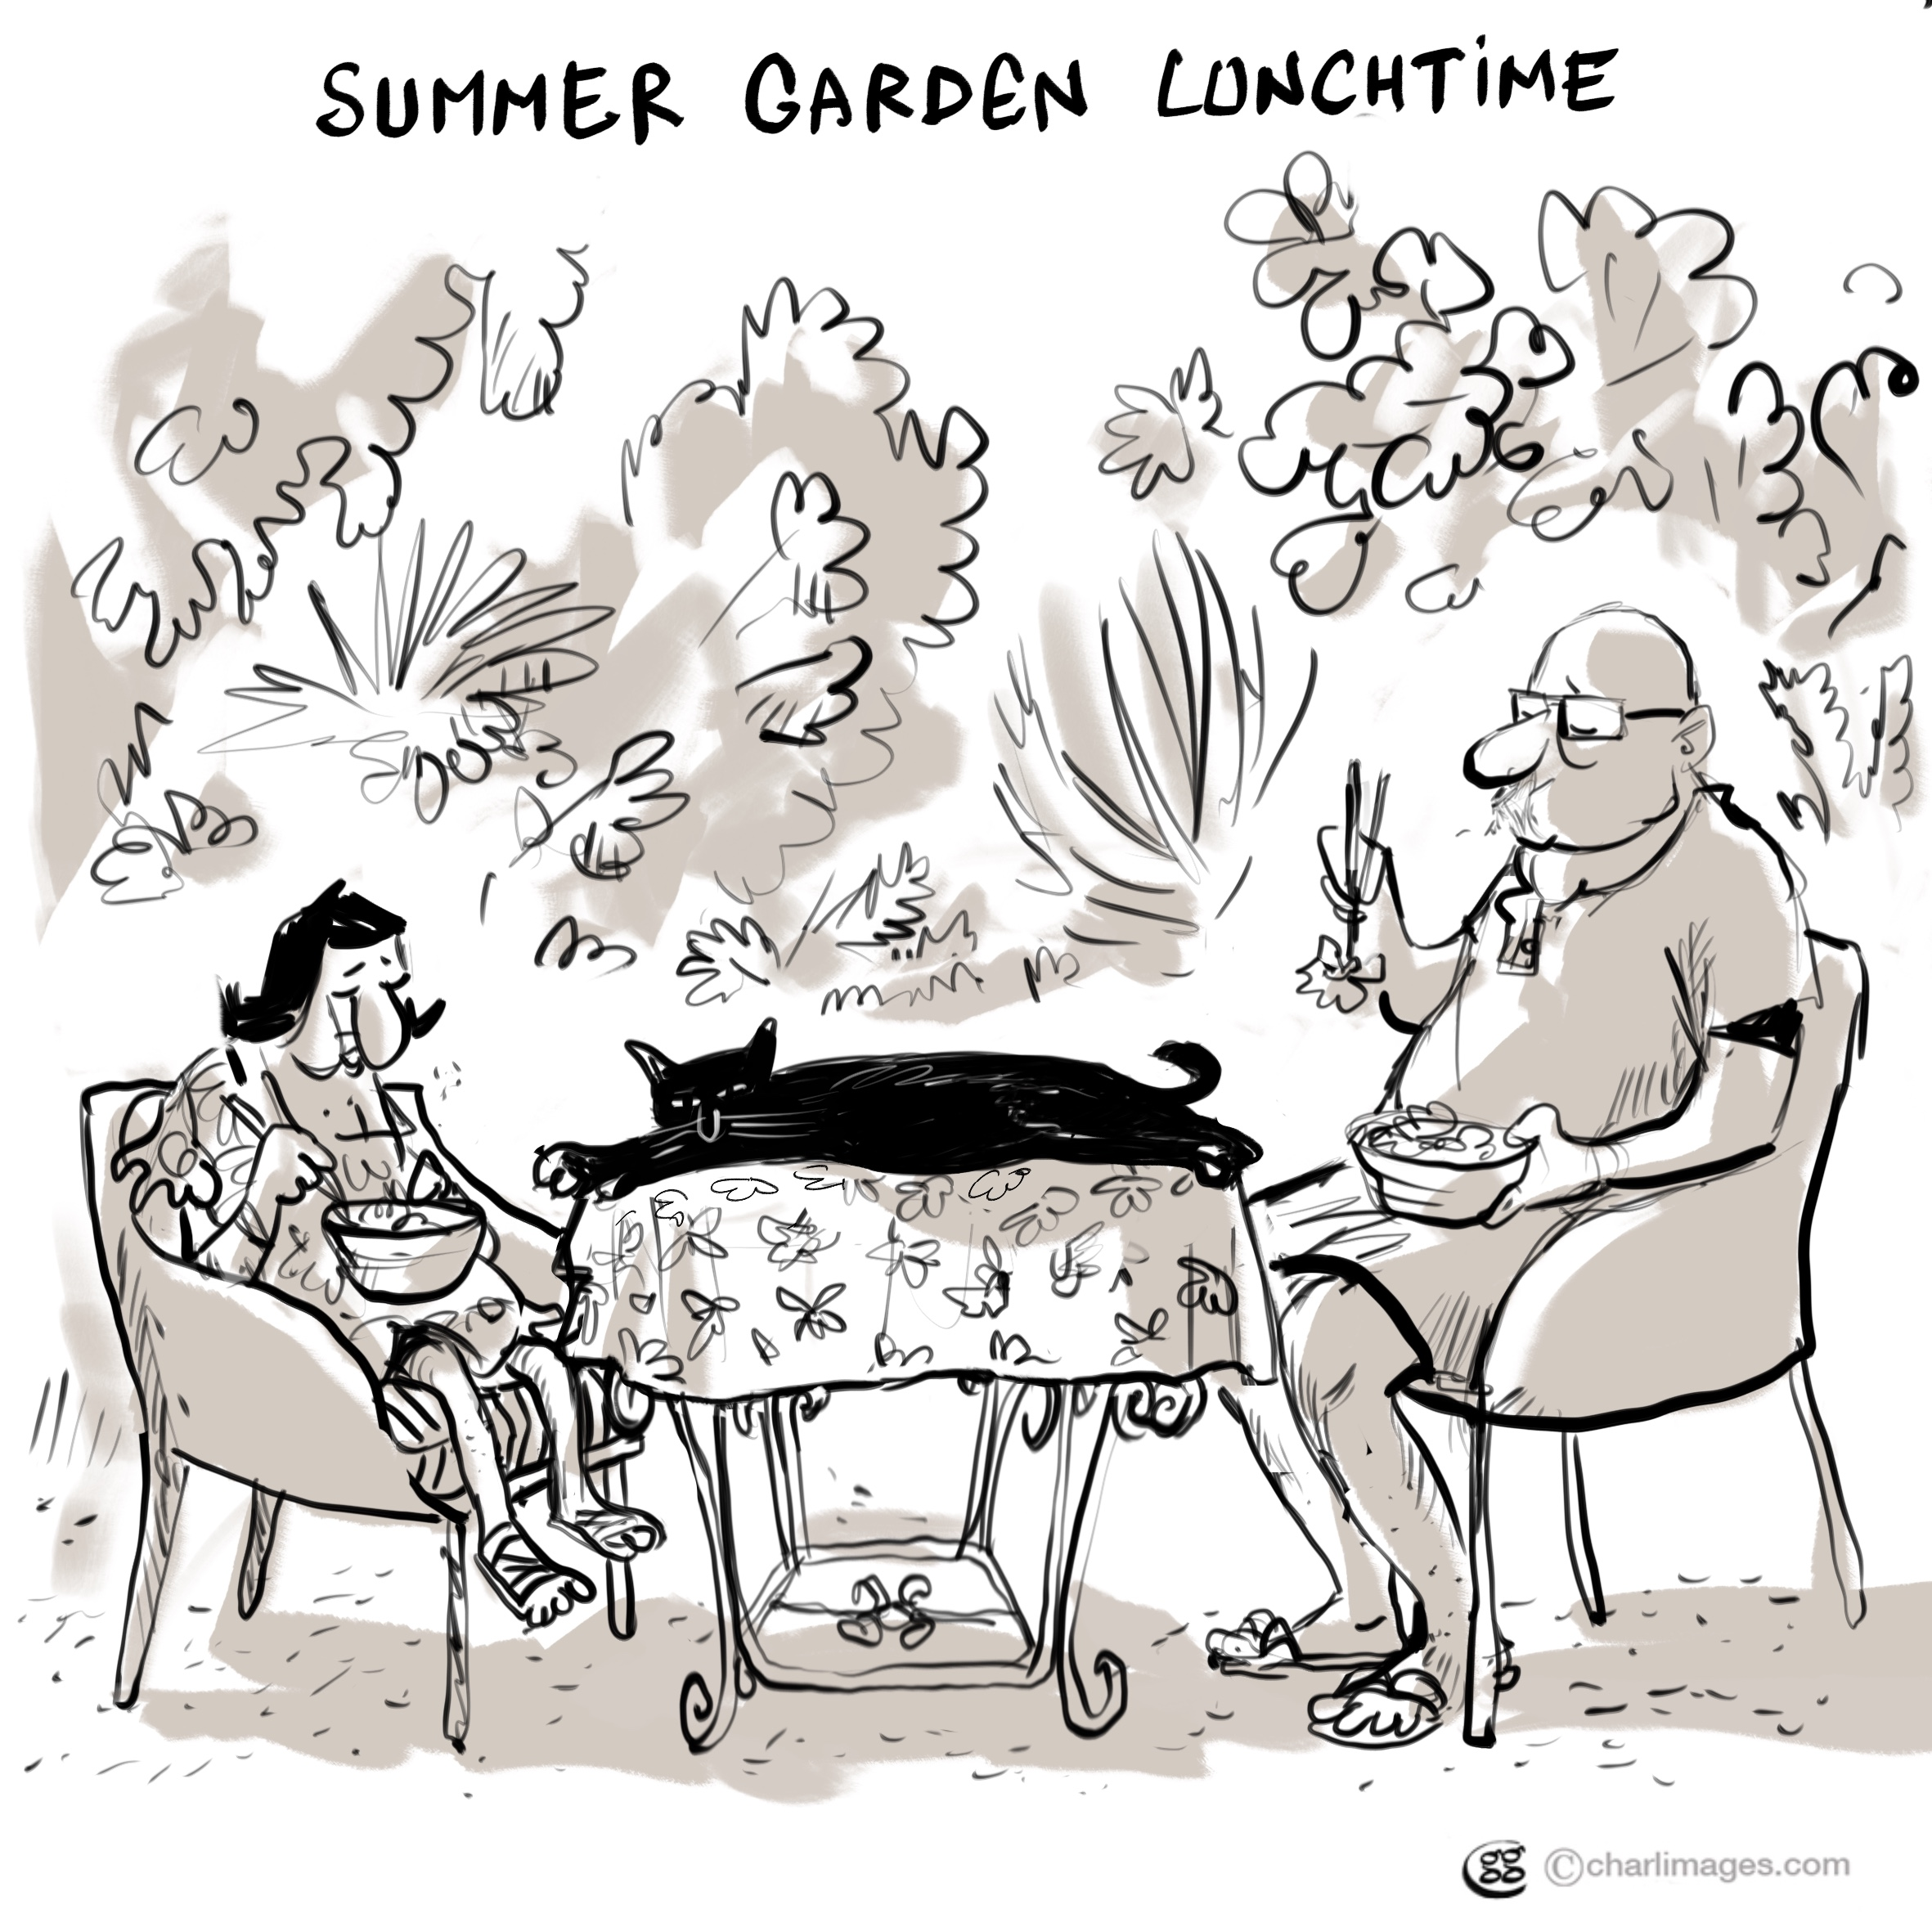 Summer garden lunchtime